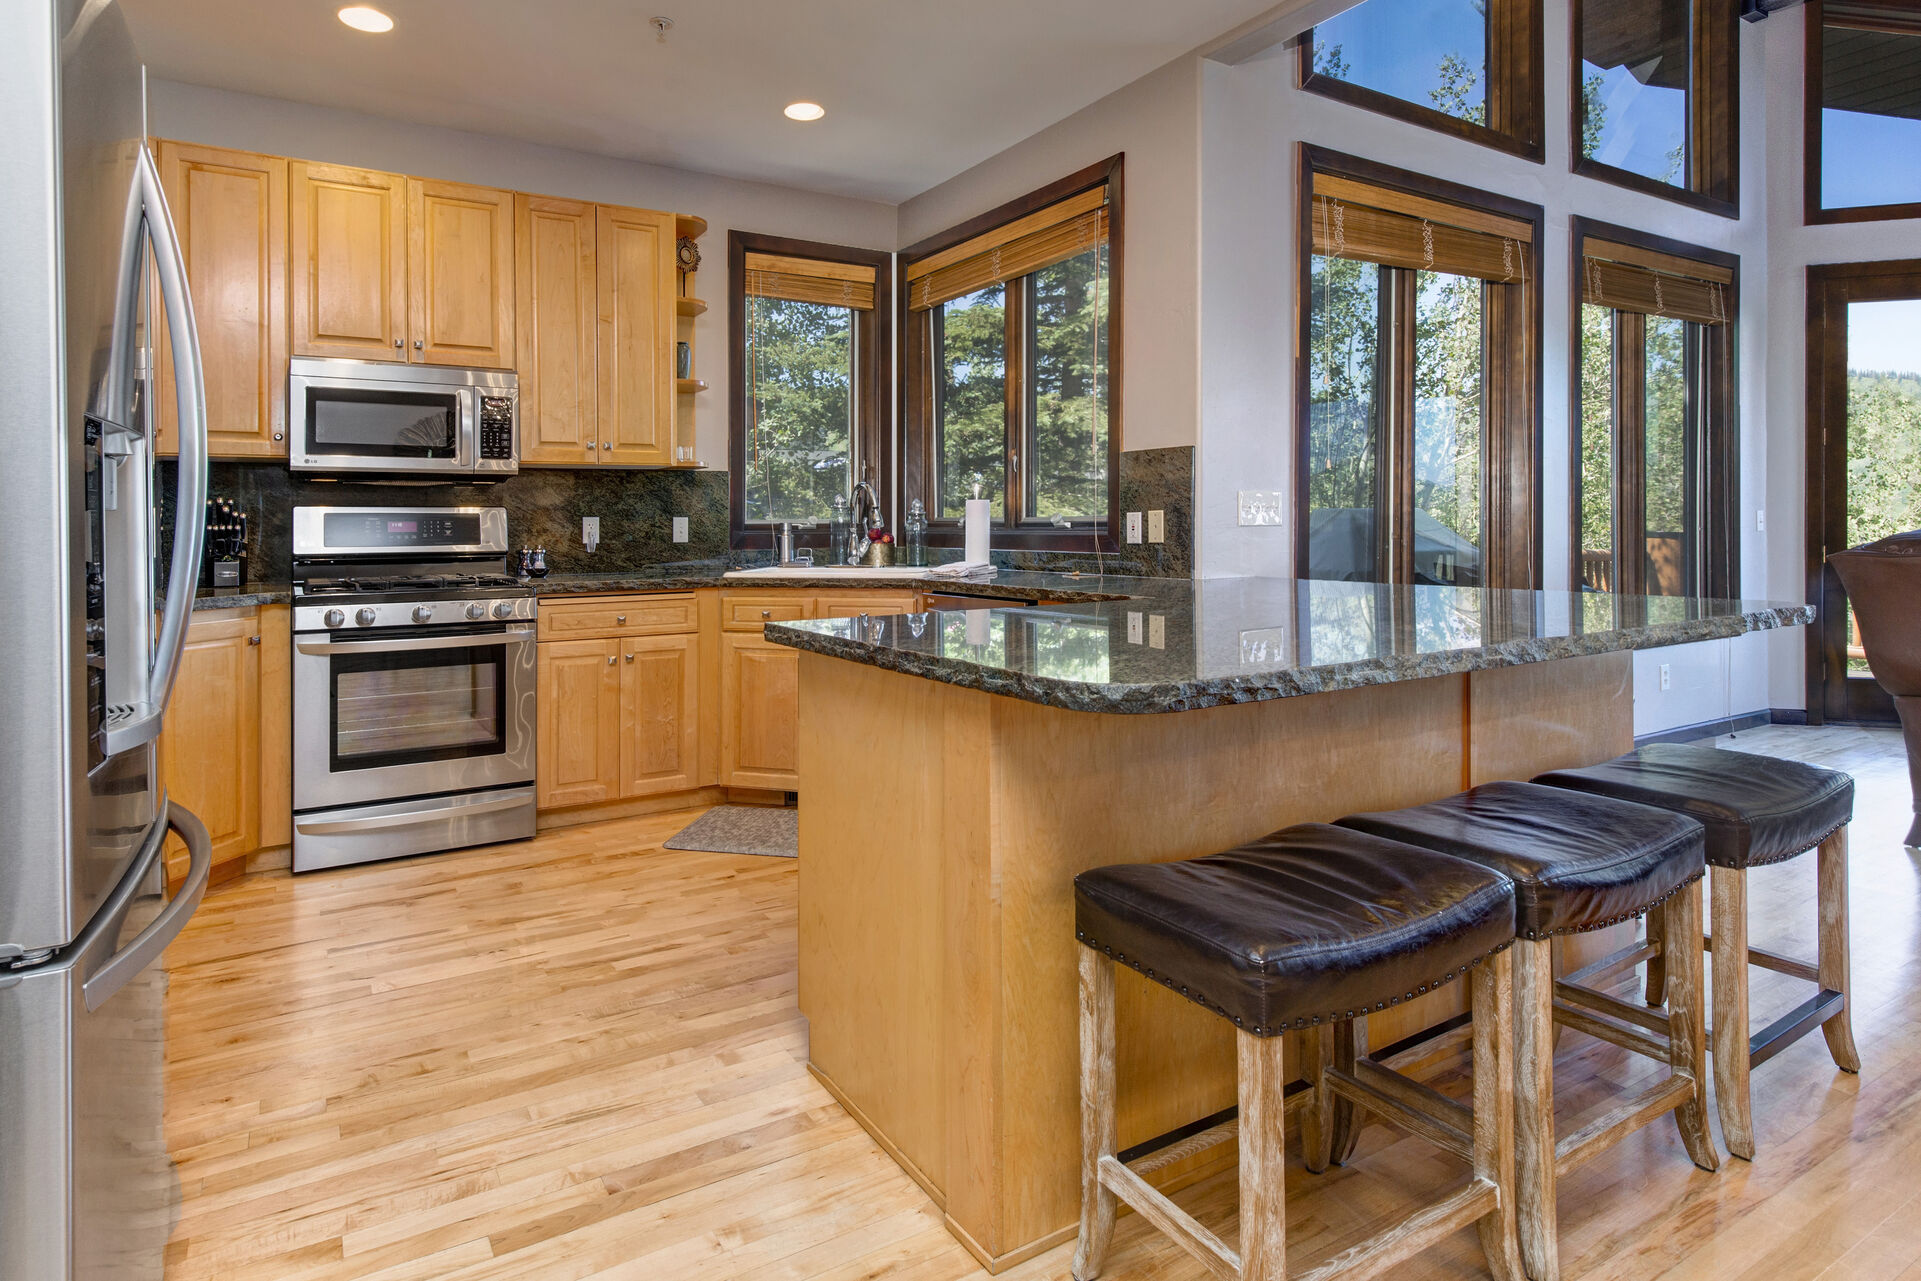 Fully Equipped and Offers Stainless Steel Appliances, Plenty of Counter Space and Bar Seating for Five